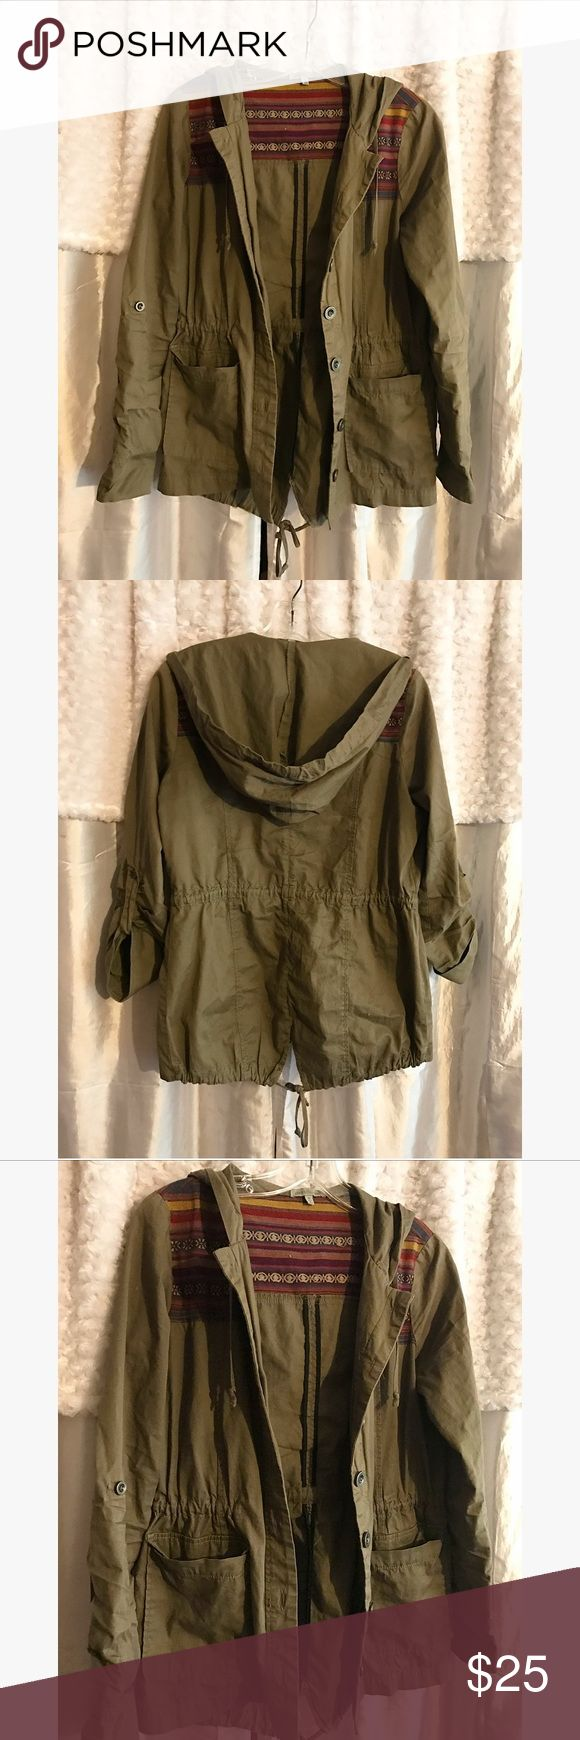 Green Utility Jacket Lightweight utility jacket featuring an Aztec/western pattern across the shoulders. Trendy and fun to add to an outfit! Perfect spring piece! Charlotte Russe Jackets & Coats Utility Jackets